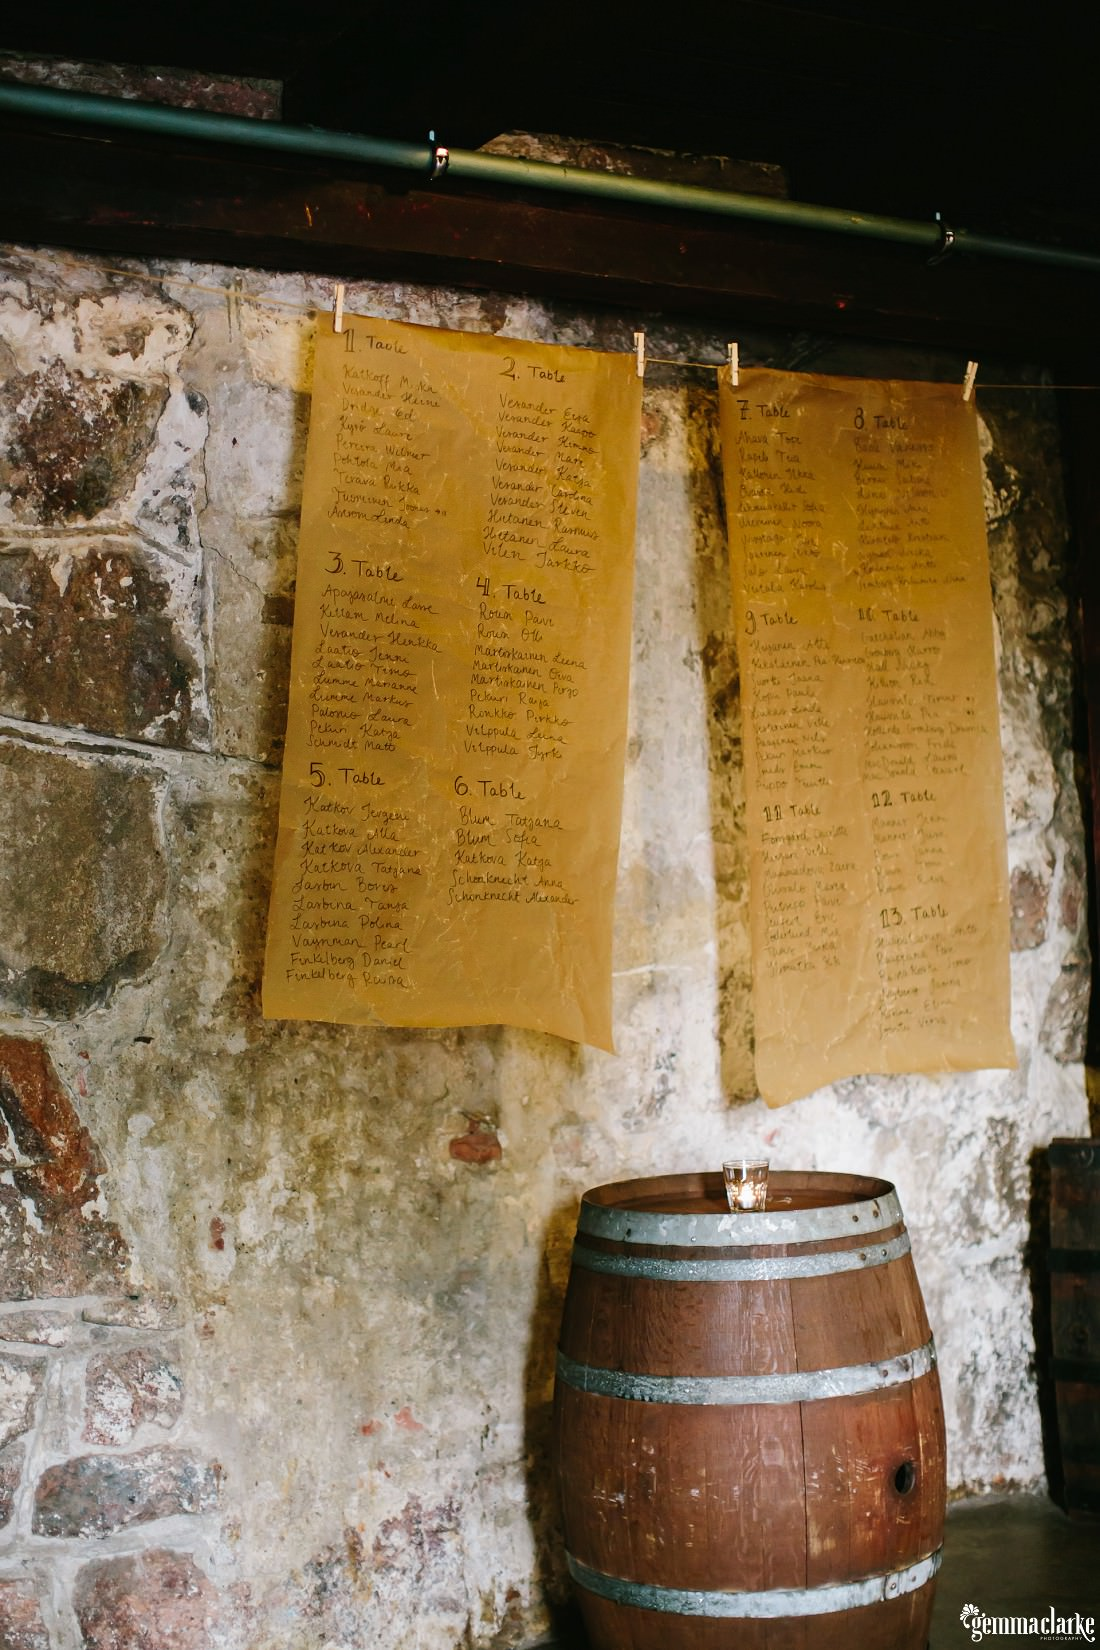 Seating arrangement signs hung in front of a stone wall near a wooden barrel